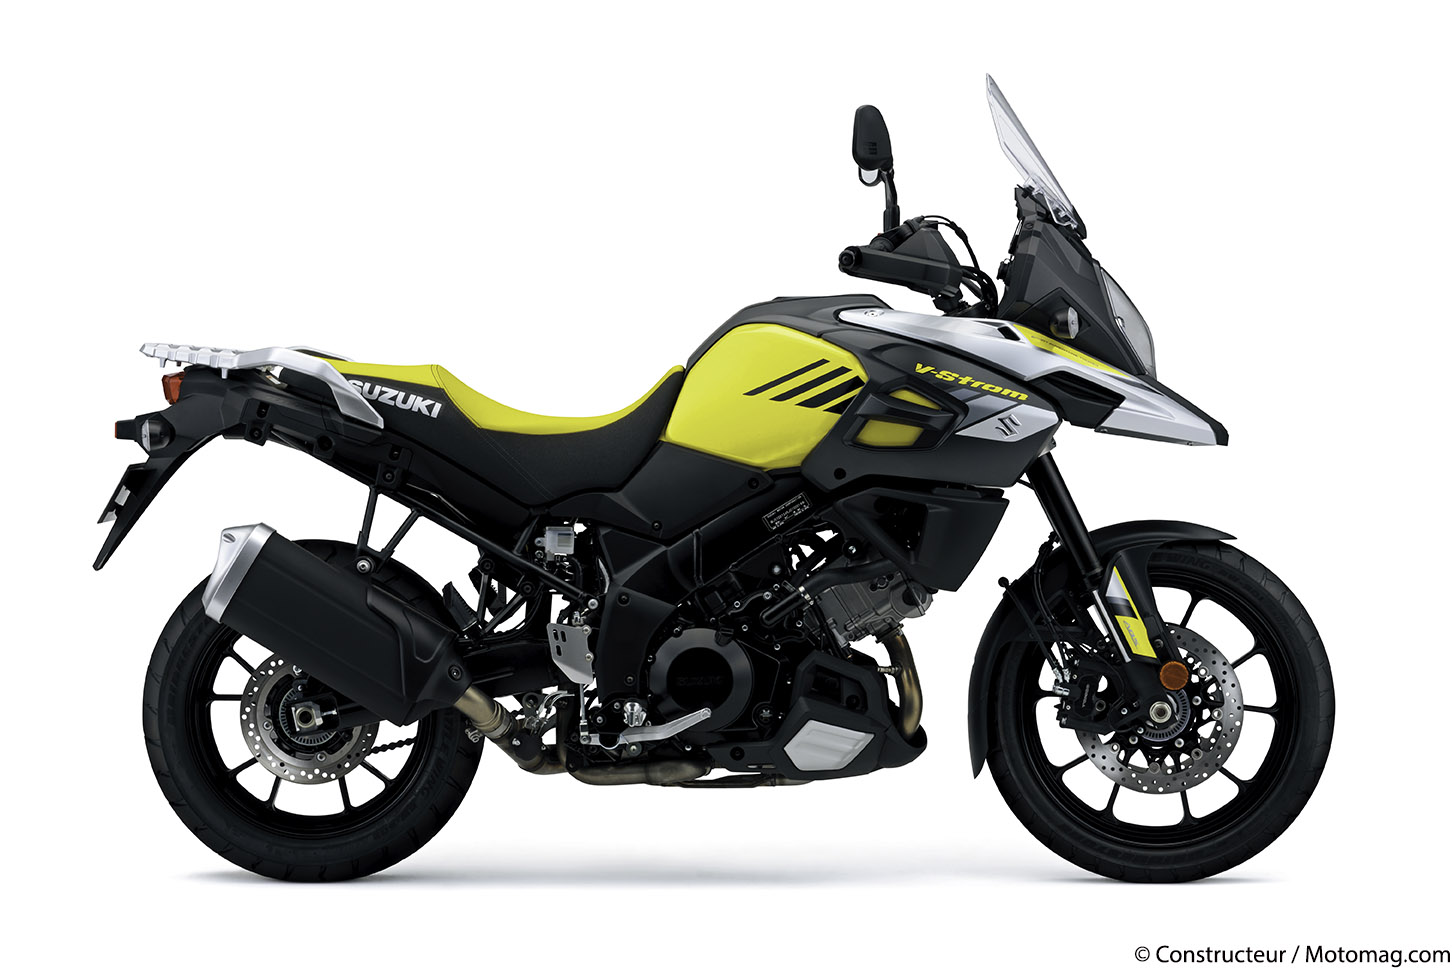 suzuki v strom 1000 xt la simplicit a du bon moto magazine leader de l actualit de la. Black Bedroom Furniture Sets. Home Design Ideas